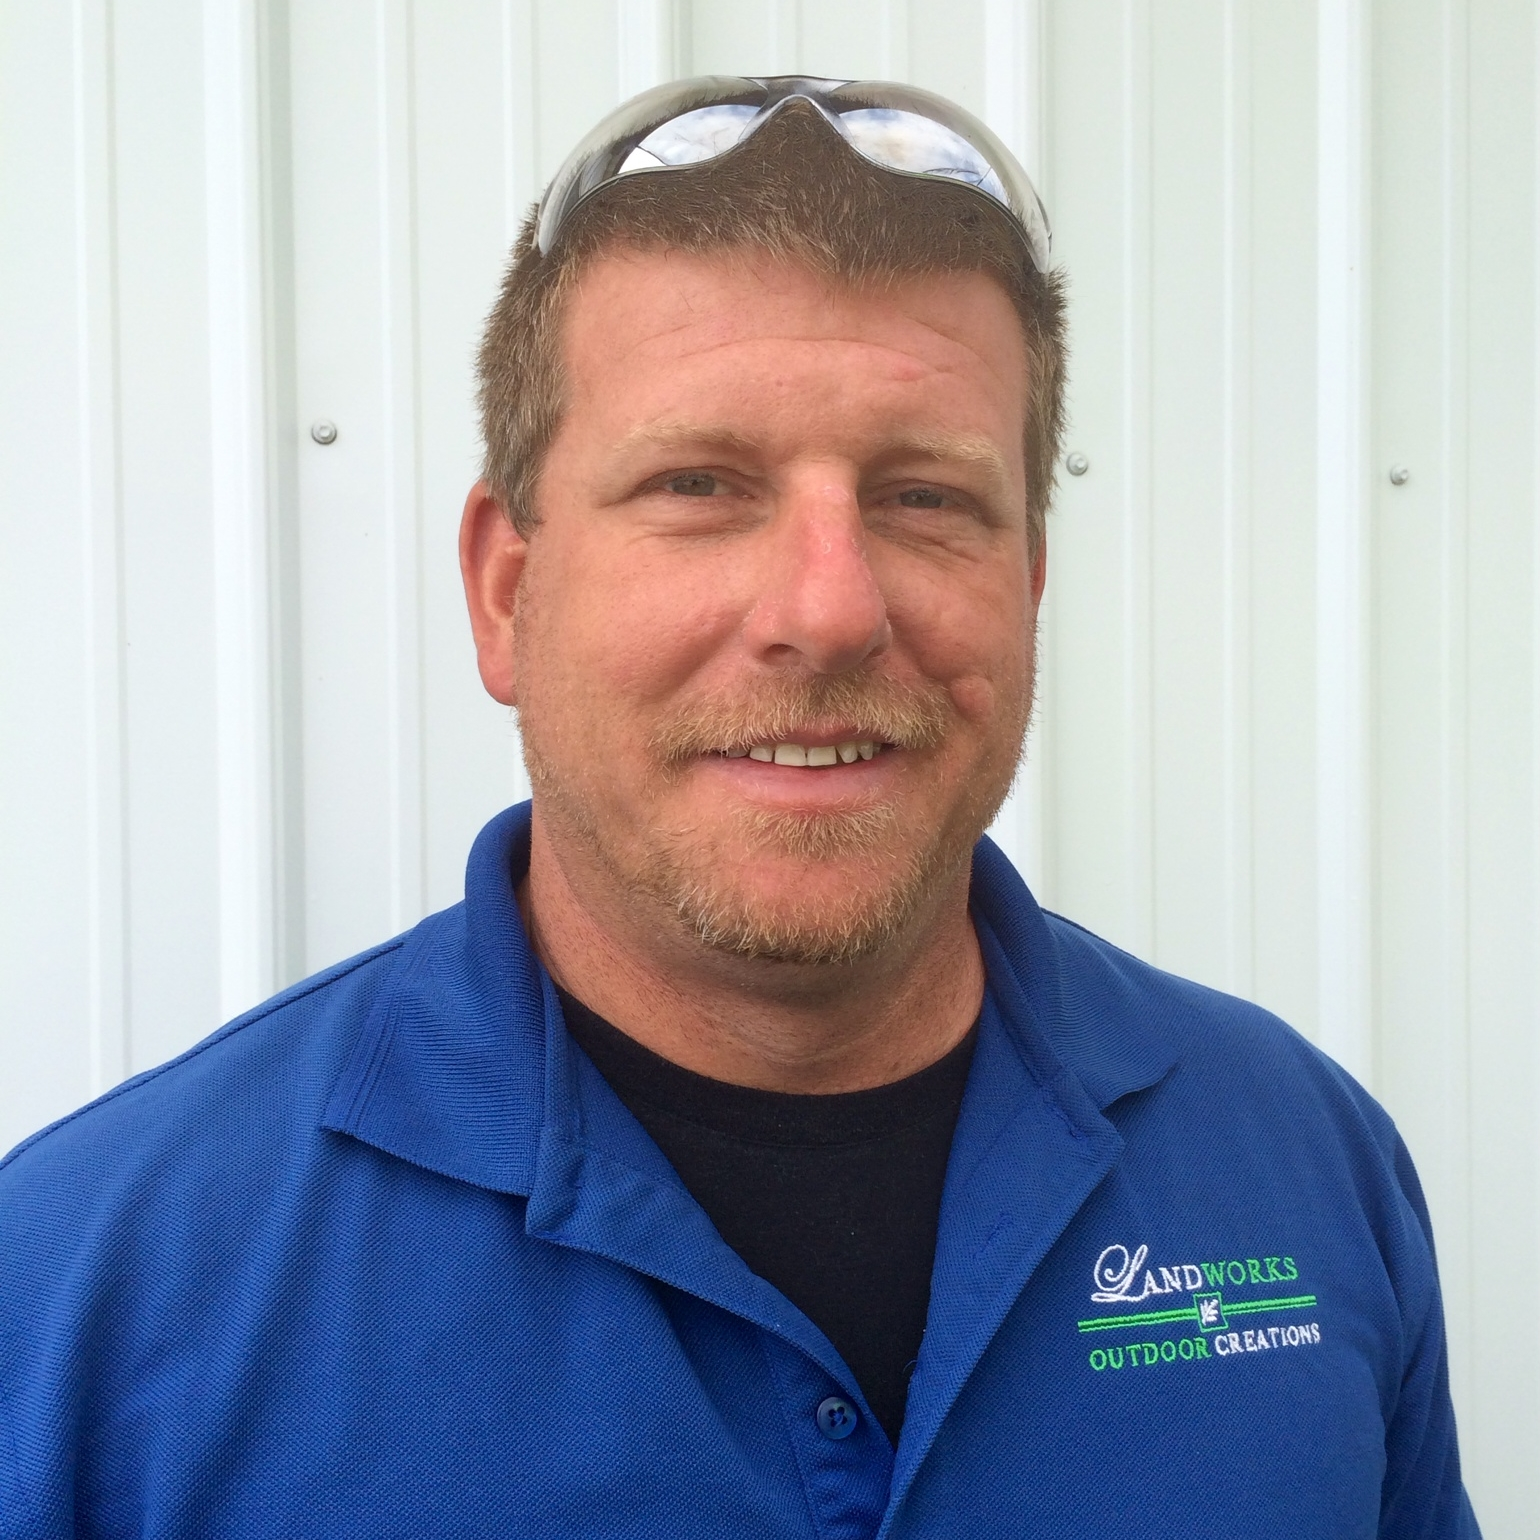 Jeremiah Perraut     Jeremiah is the Operations Manager with a range of experience from being a fireman to having 13 years of experience landscaping. He grew up in Bourbon County where he graduated from high school and went on to attend Morehead State University. He enjoys spending his time outdoors hiking, kayaking and being with his wife, Audra, and their two children.